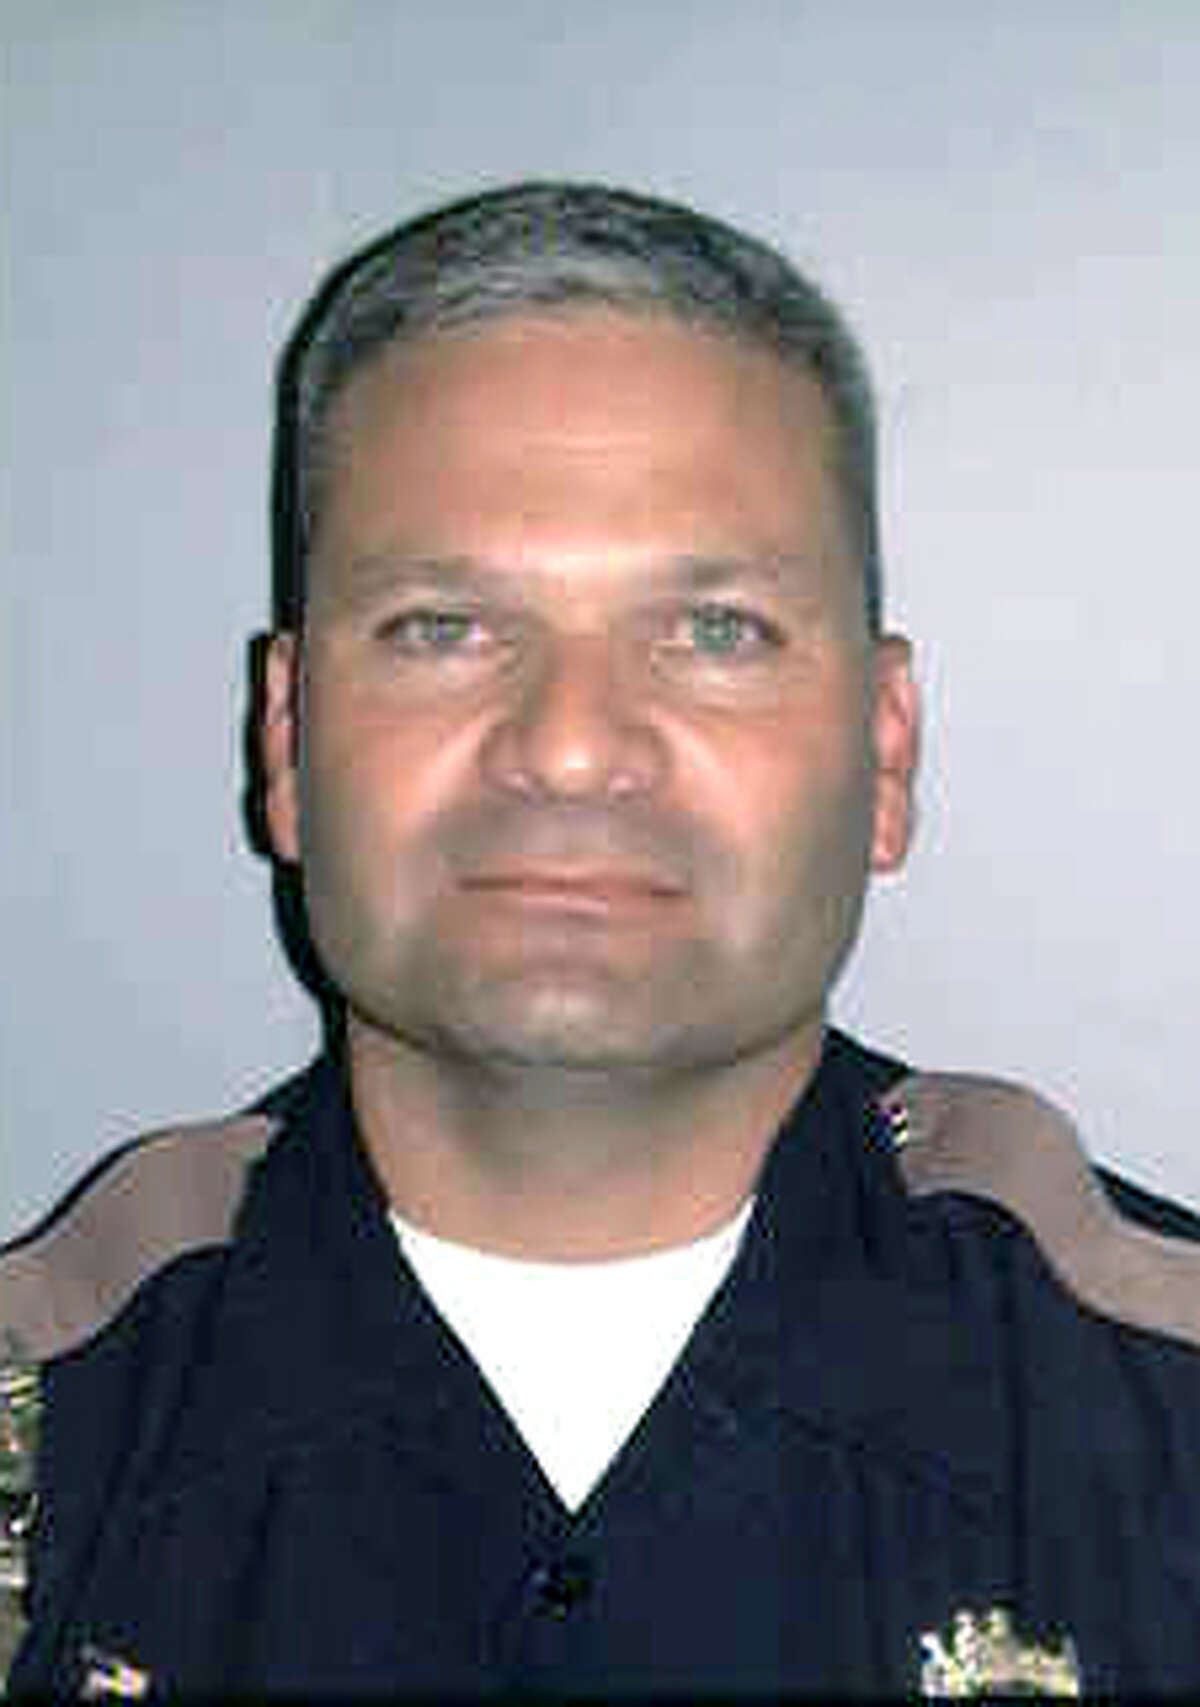 Bexar County Sgt. Kenneth Vann was shot and killed May 28, 2011, at the intersection of Loop 410 and Rigsby Avenue in San Antonio.